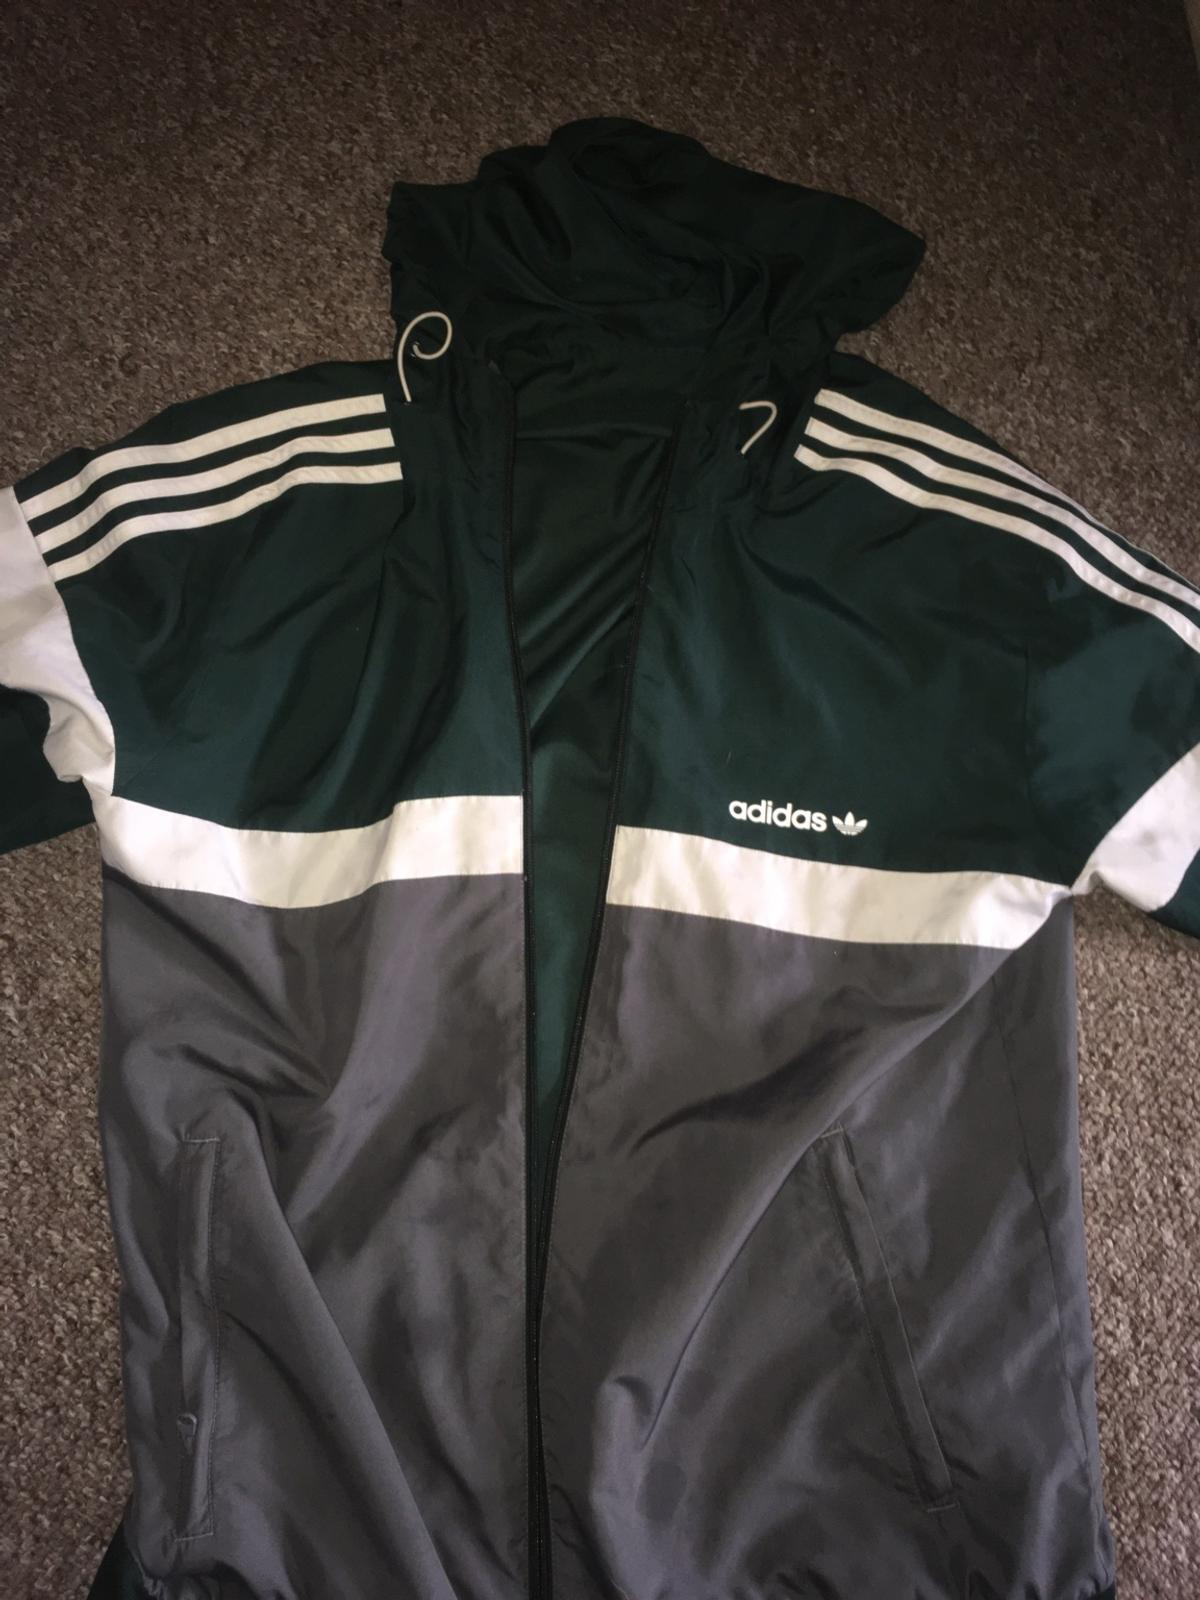 Reversible Adidas jacket , really good condition as only worn a couple of times